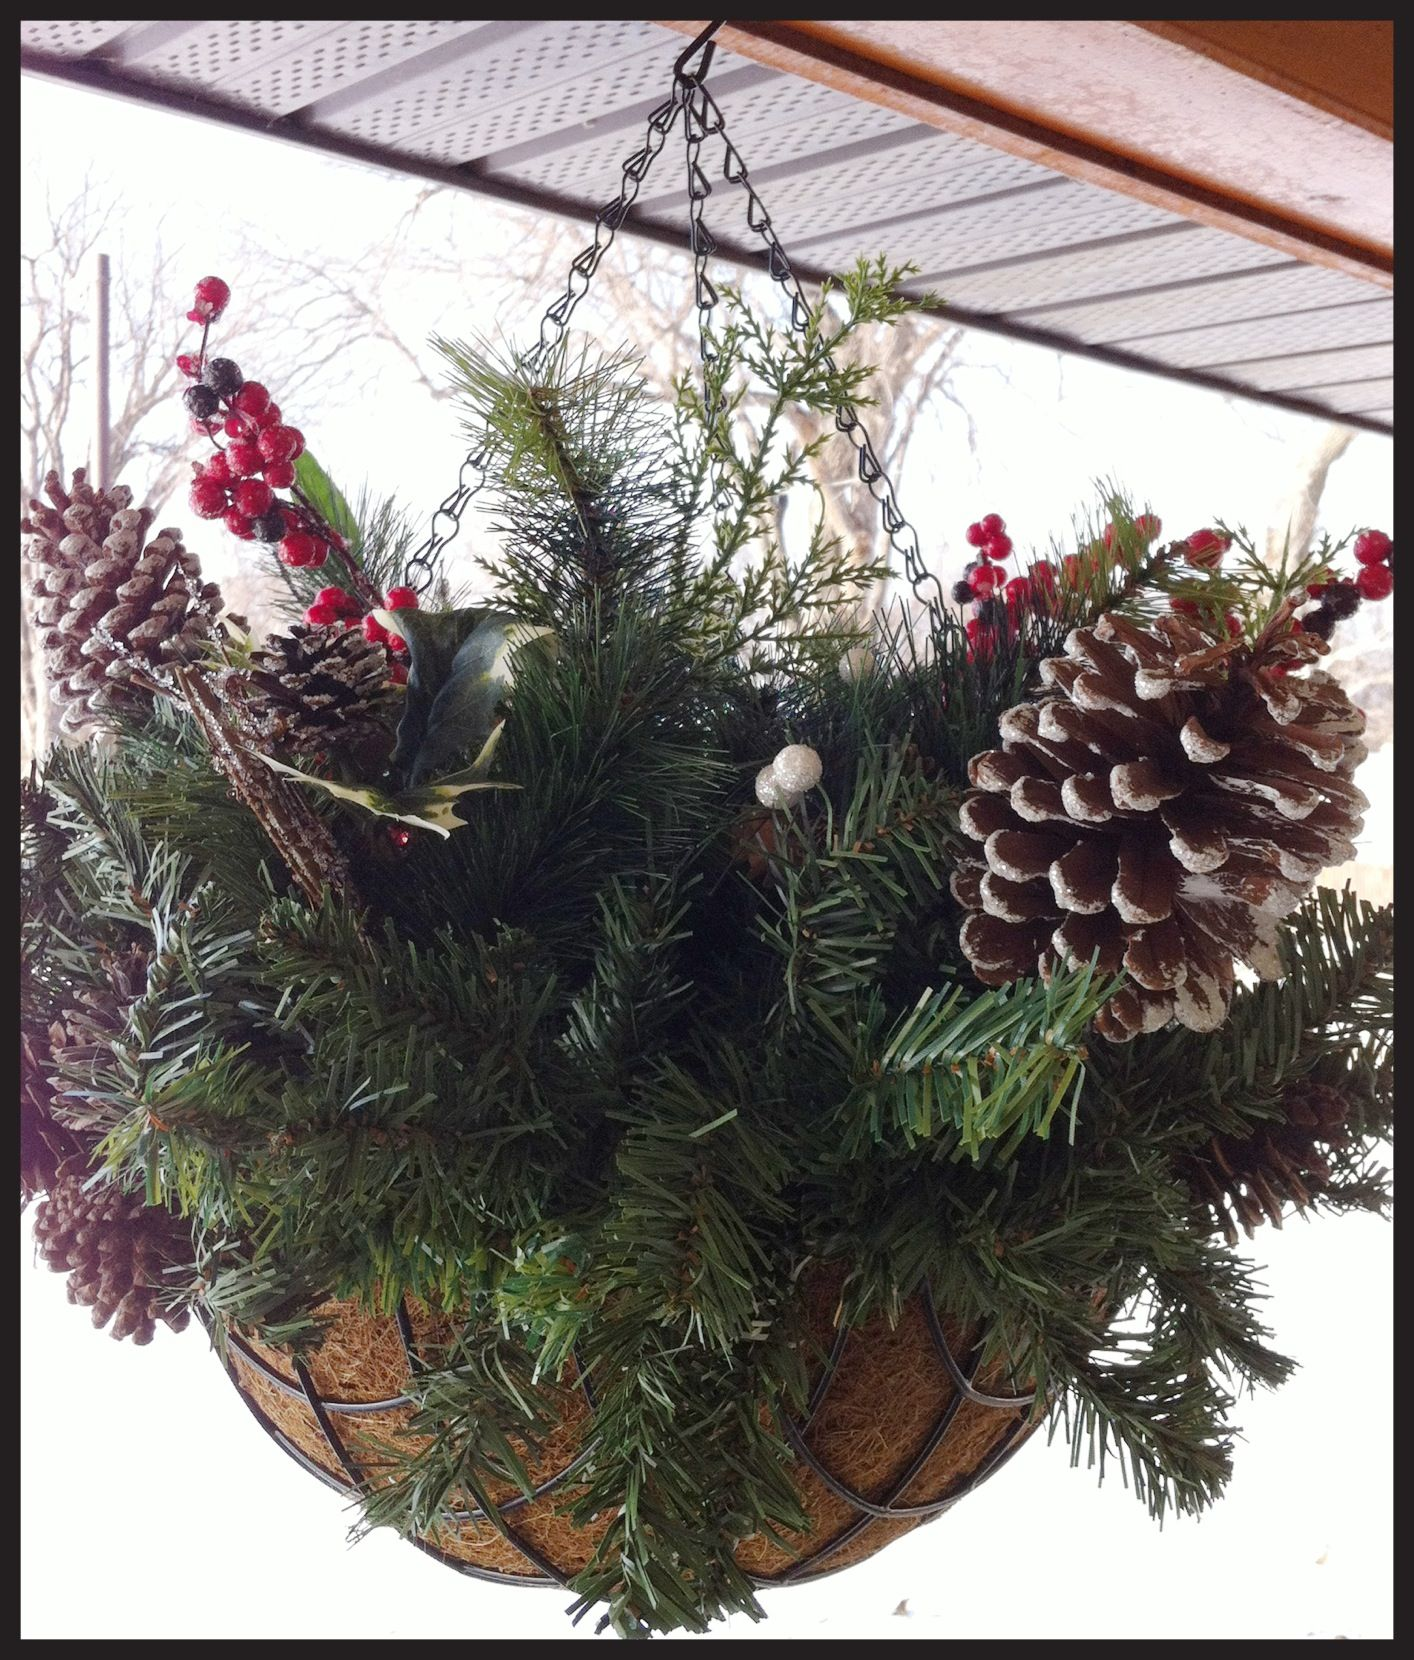 How to make hanging baskets - Christmas Hanging Baskets Really Easy To Make Artificial Greenery A Hanging Basket And